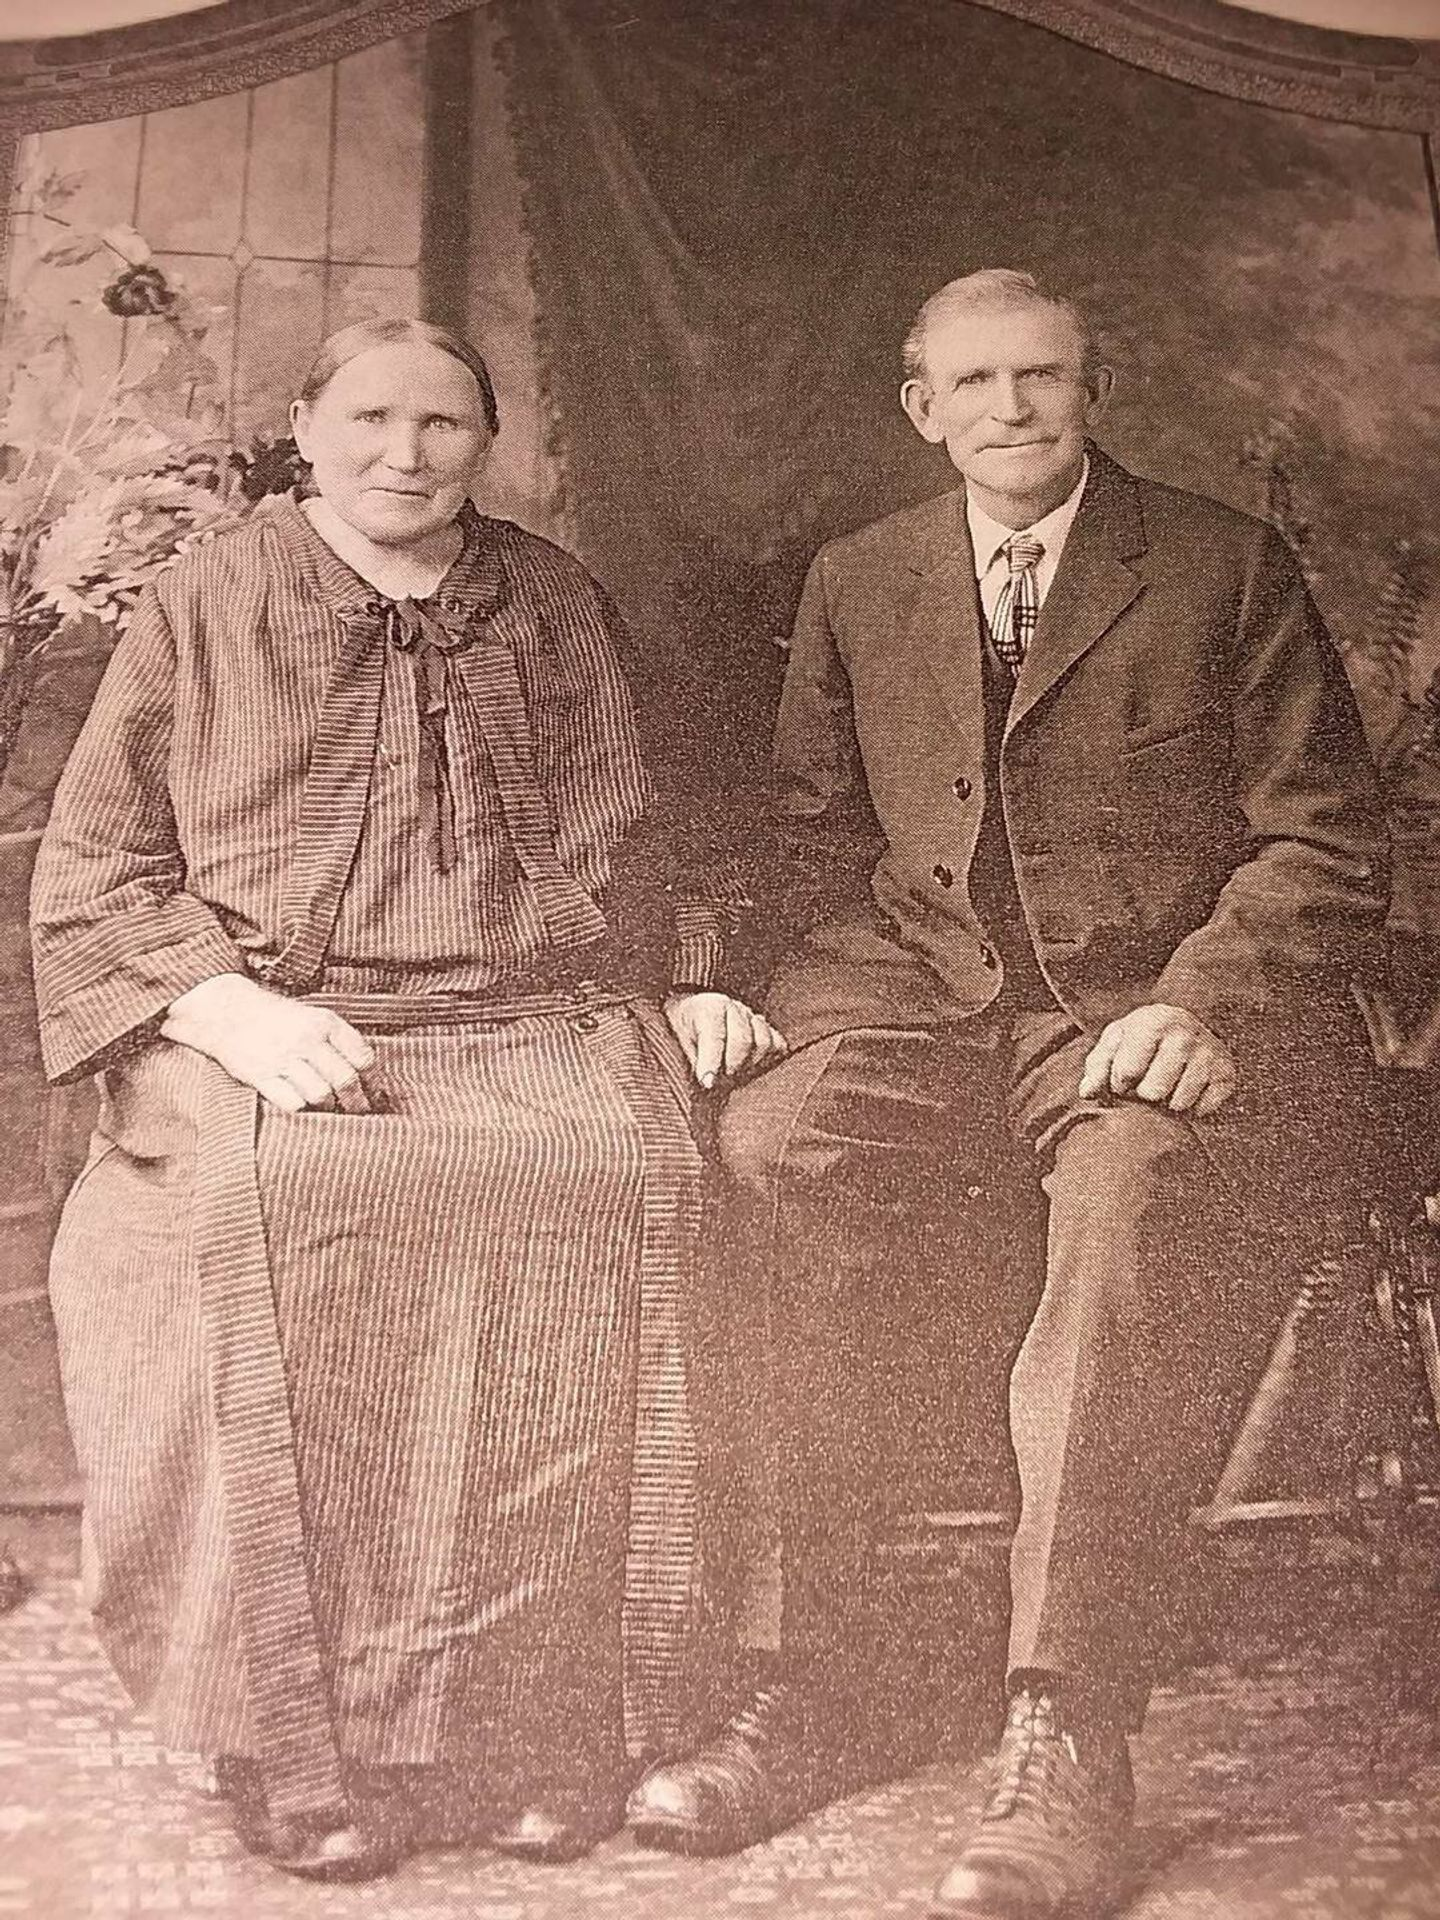 Man and woman seated dressed in formal clothes